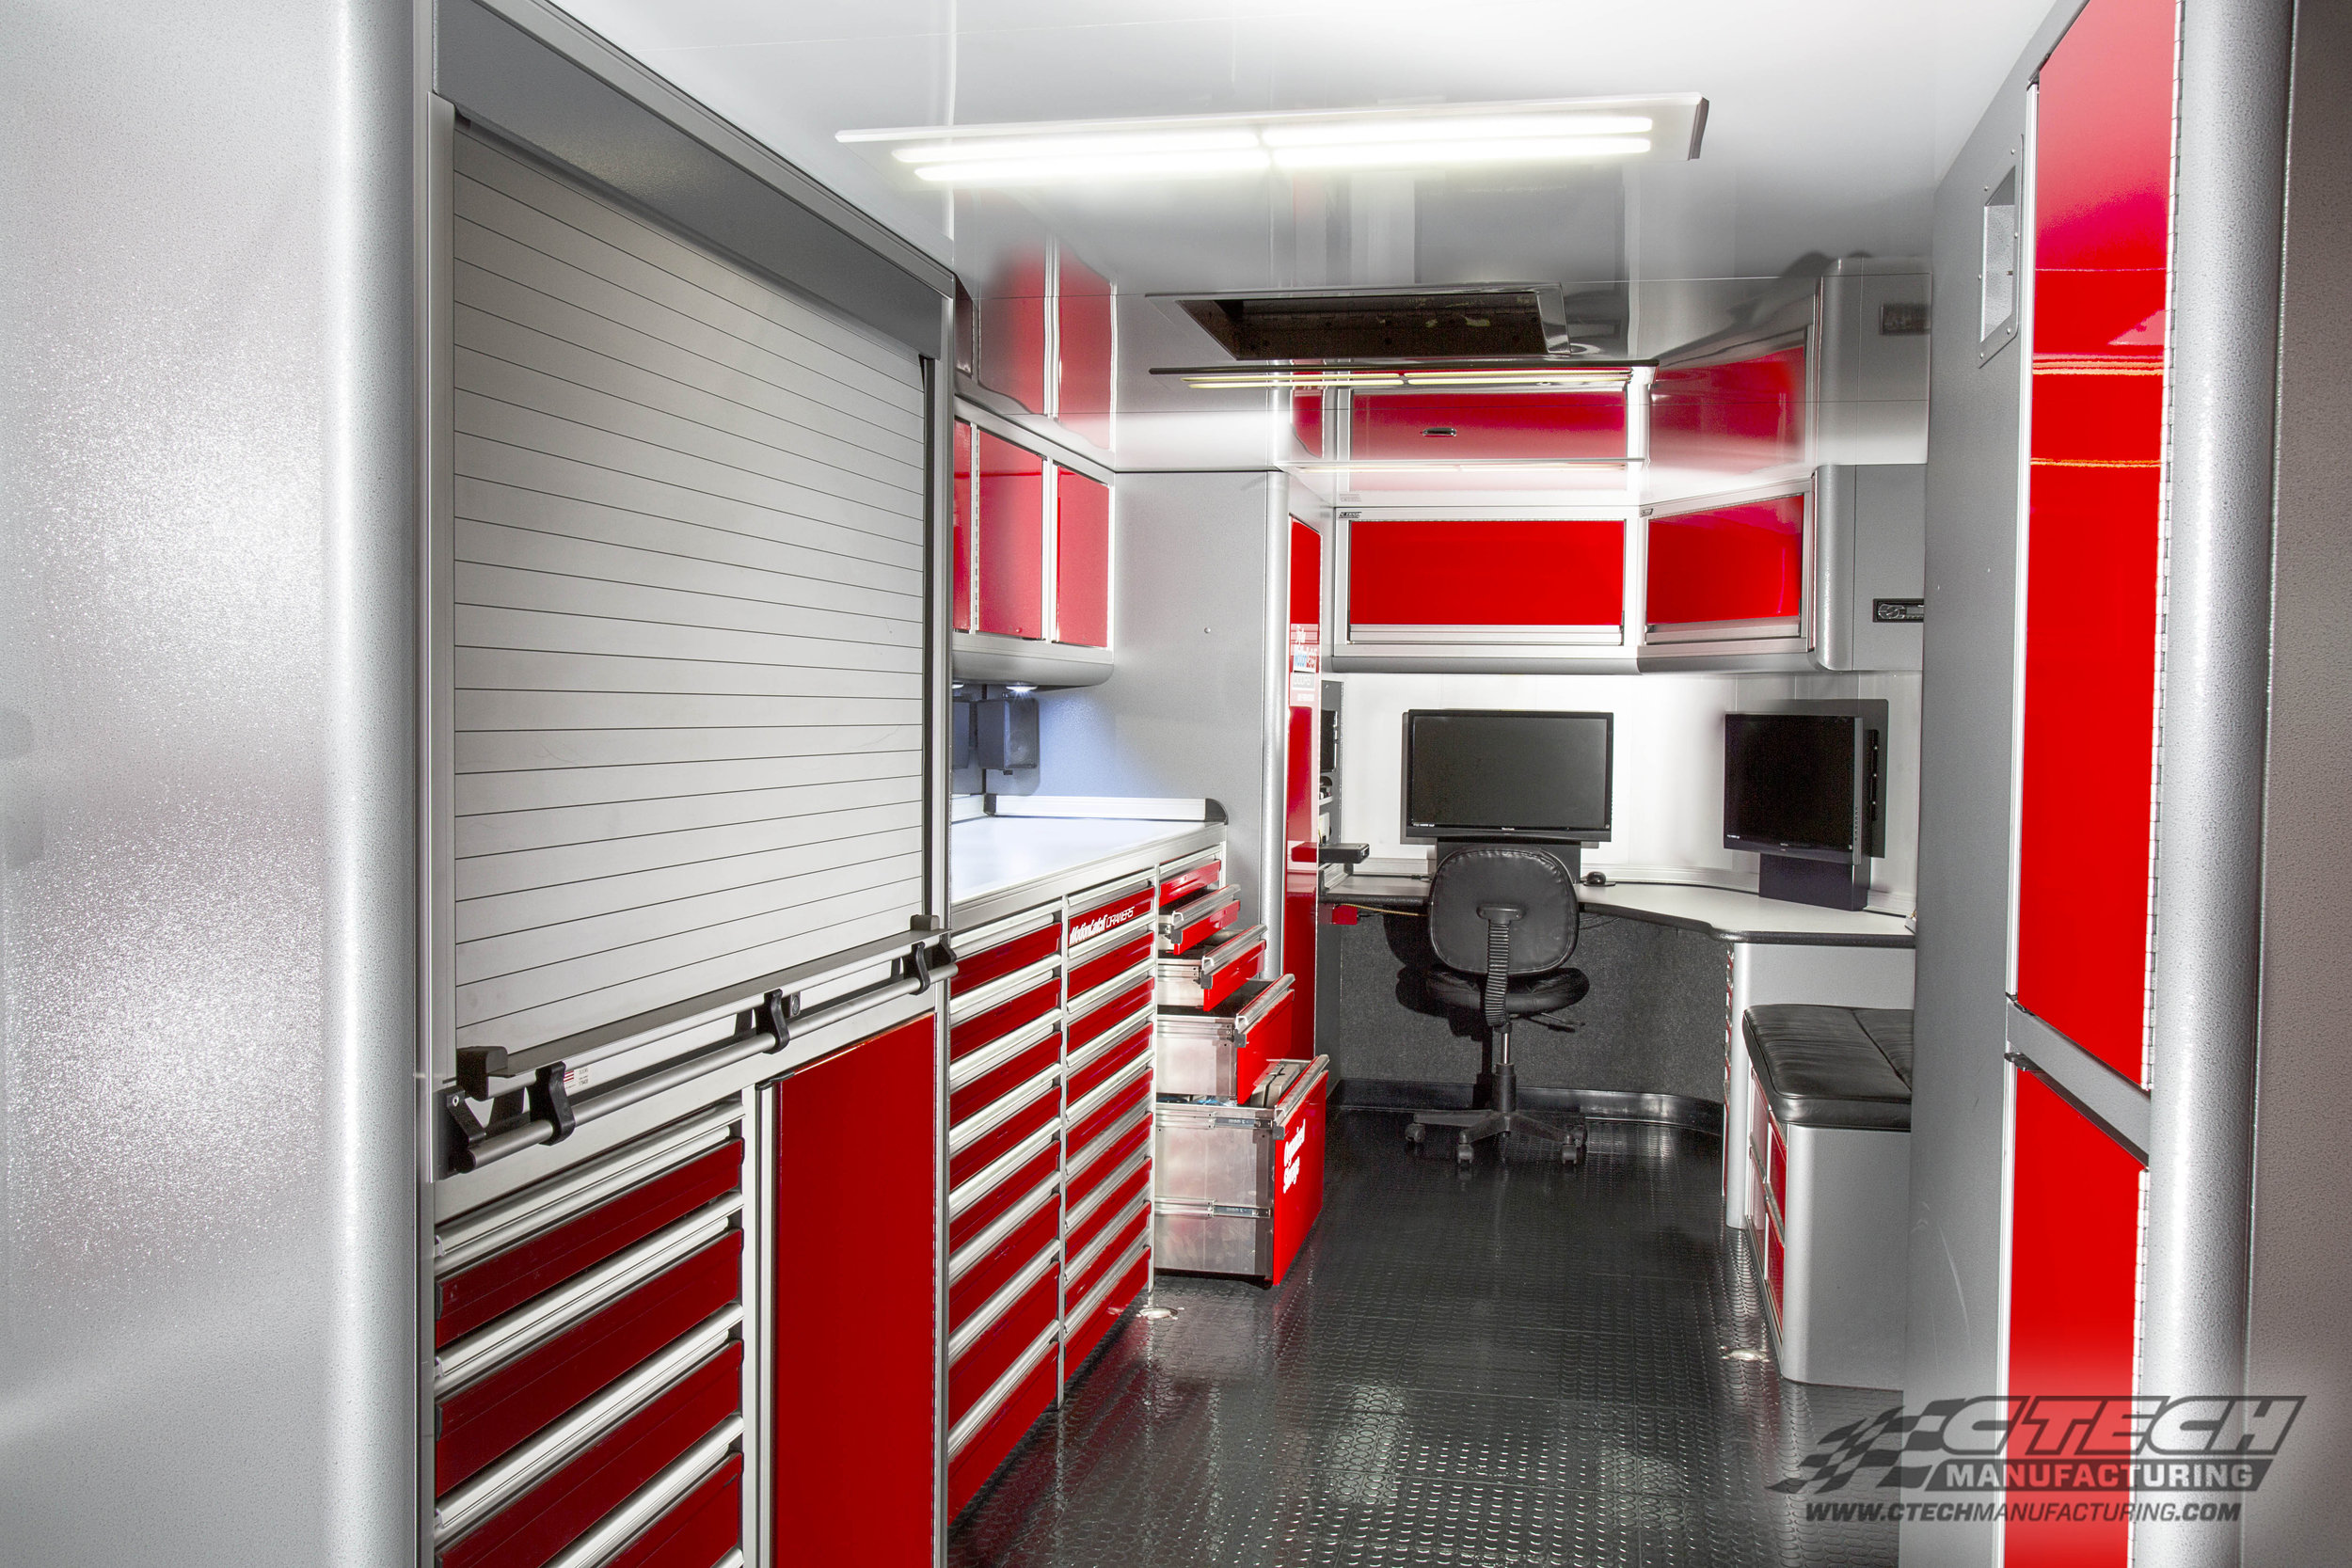 CTECH cabinets are made of lightweight and extremely tough 5052 aluminum construction, which makes them perfect for large, complex trailer systems. Here's a look inside Jim Greenheck's race hauler.